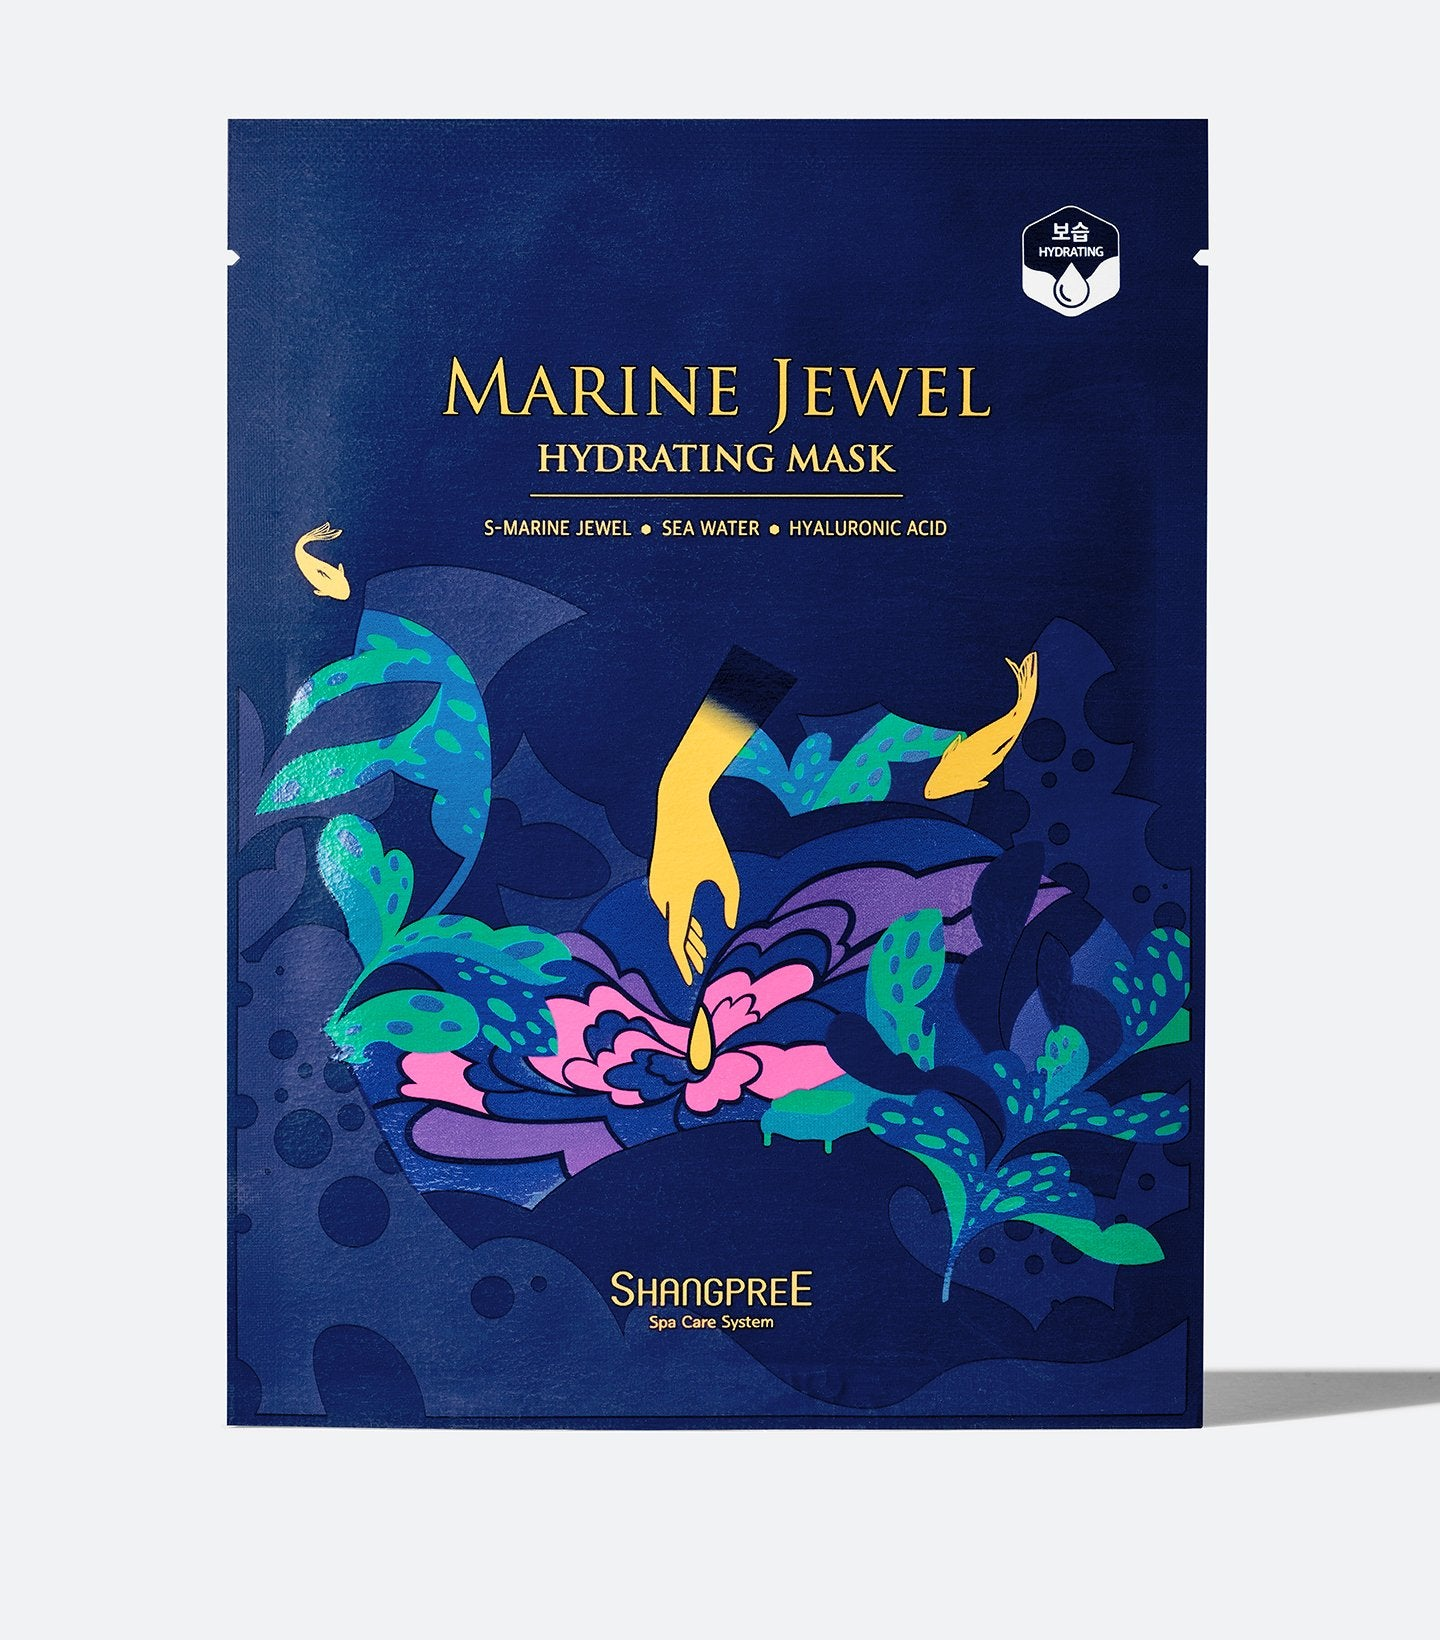 Marine Jewel Hydrating Mask